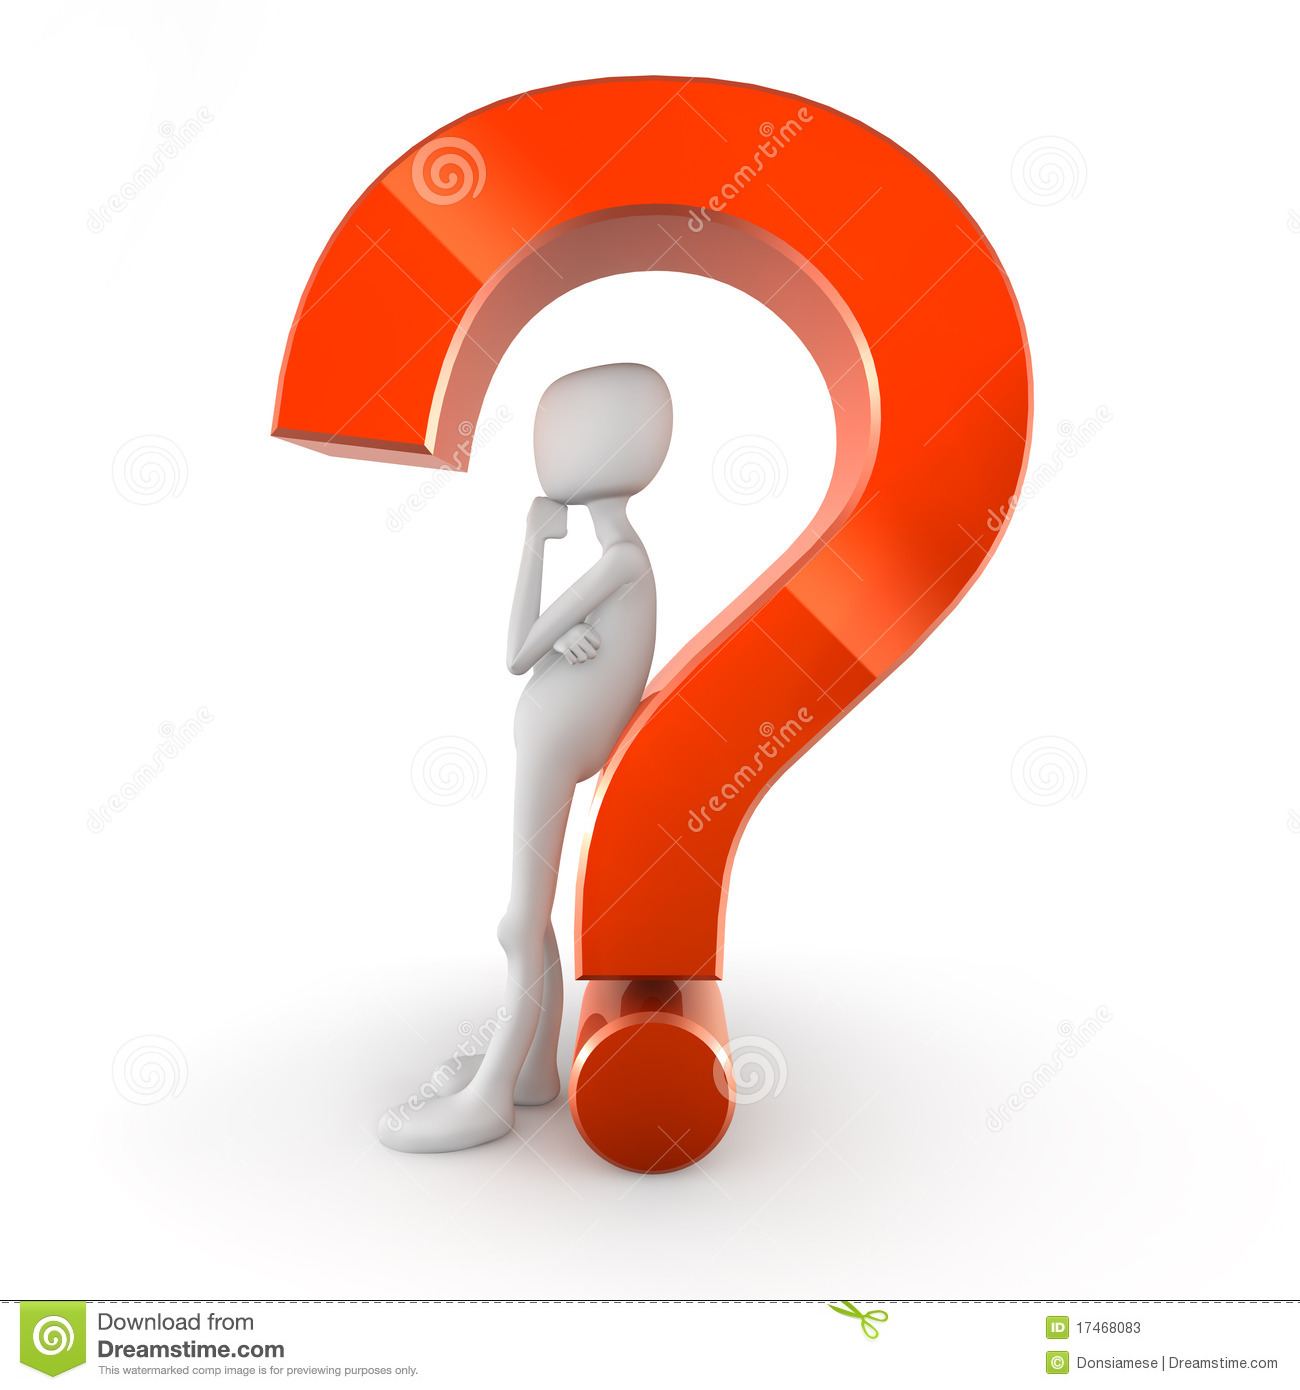 Question Sign Stock Photos - Image: 17468083